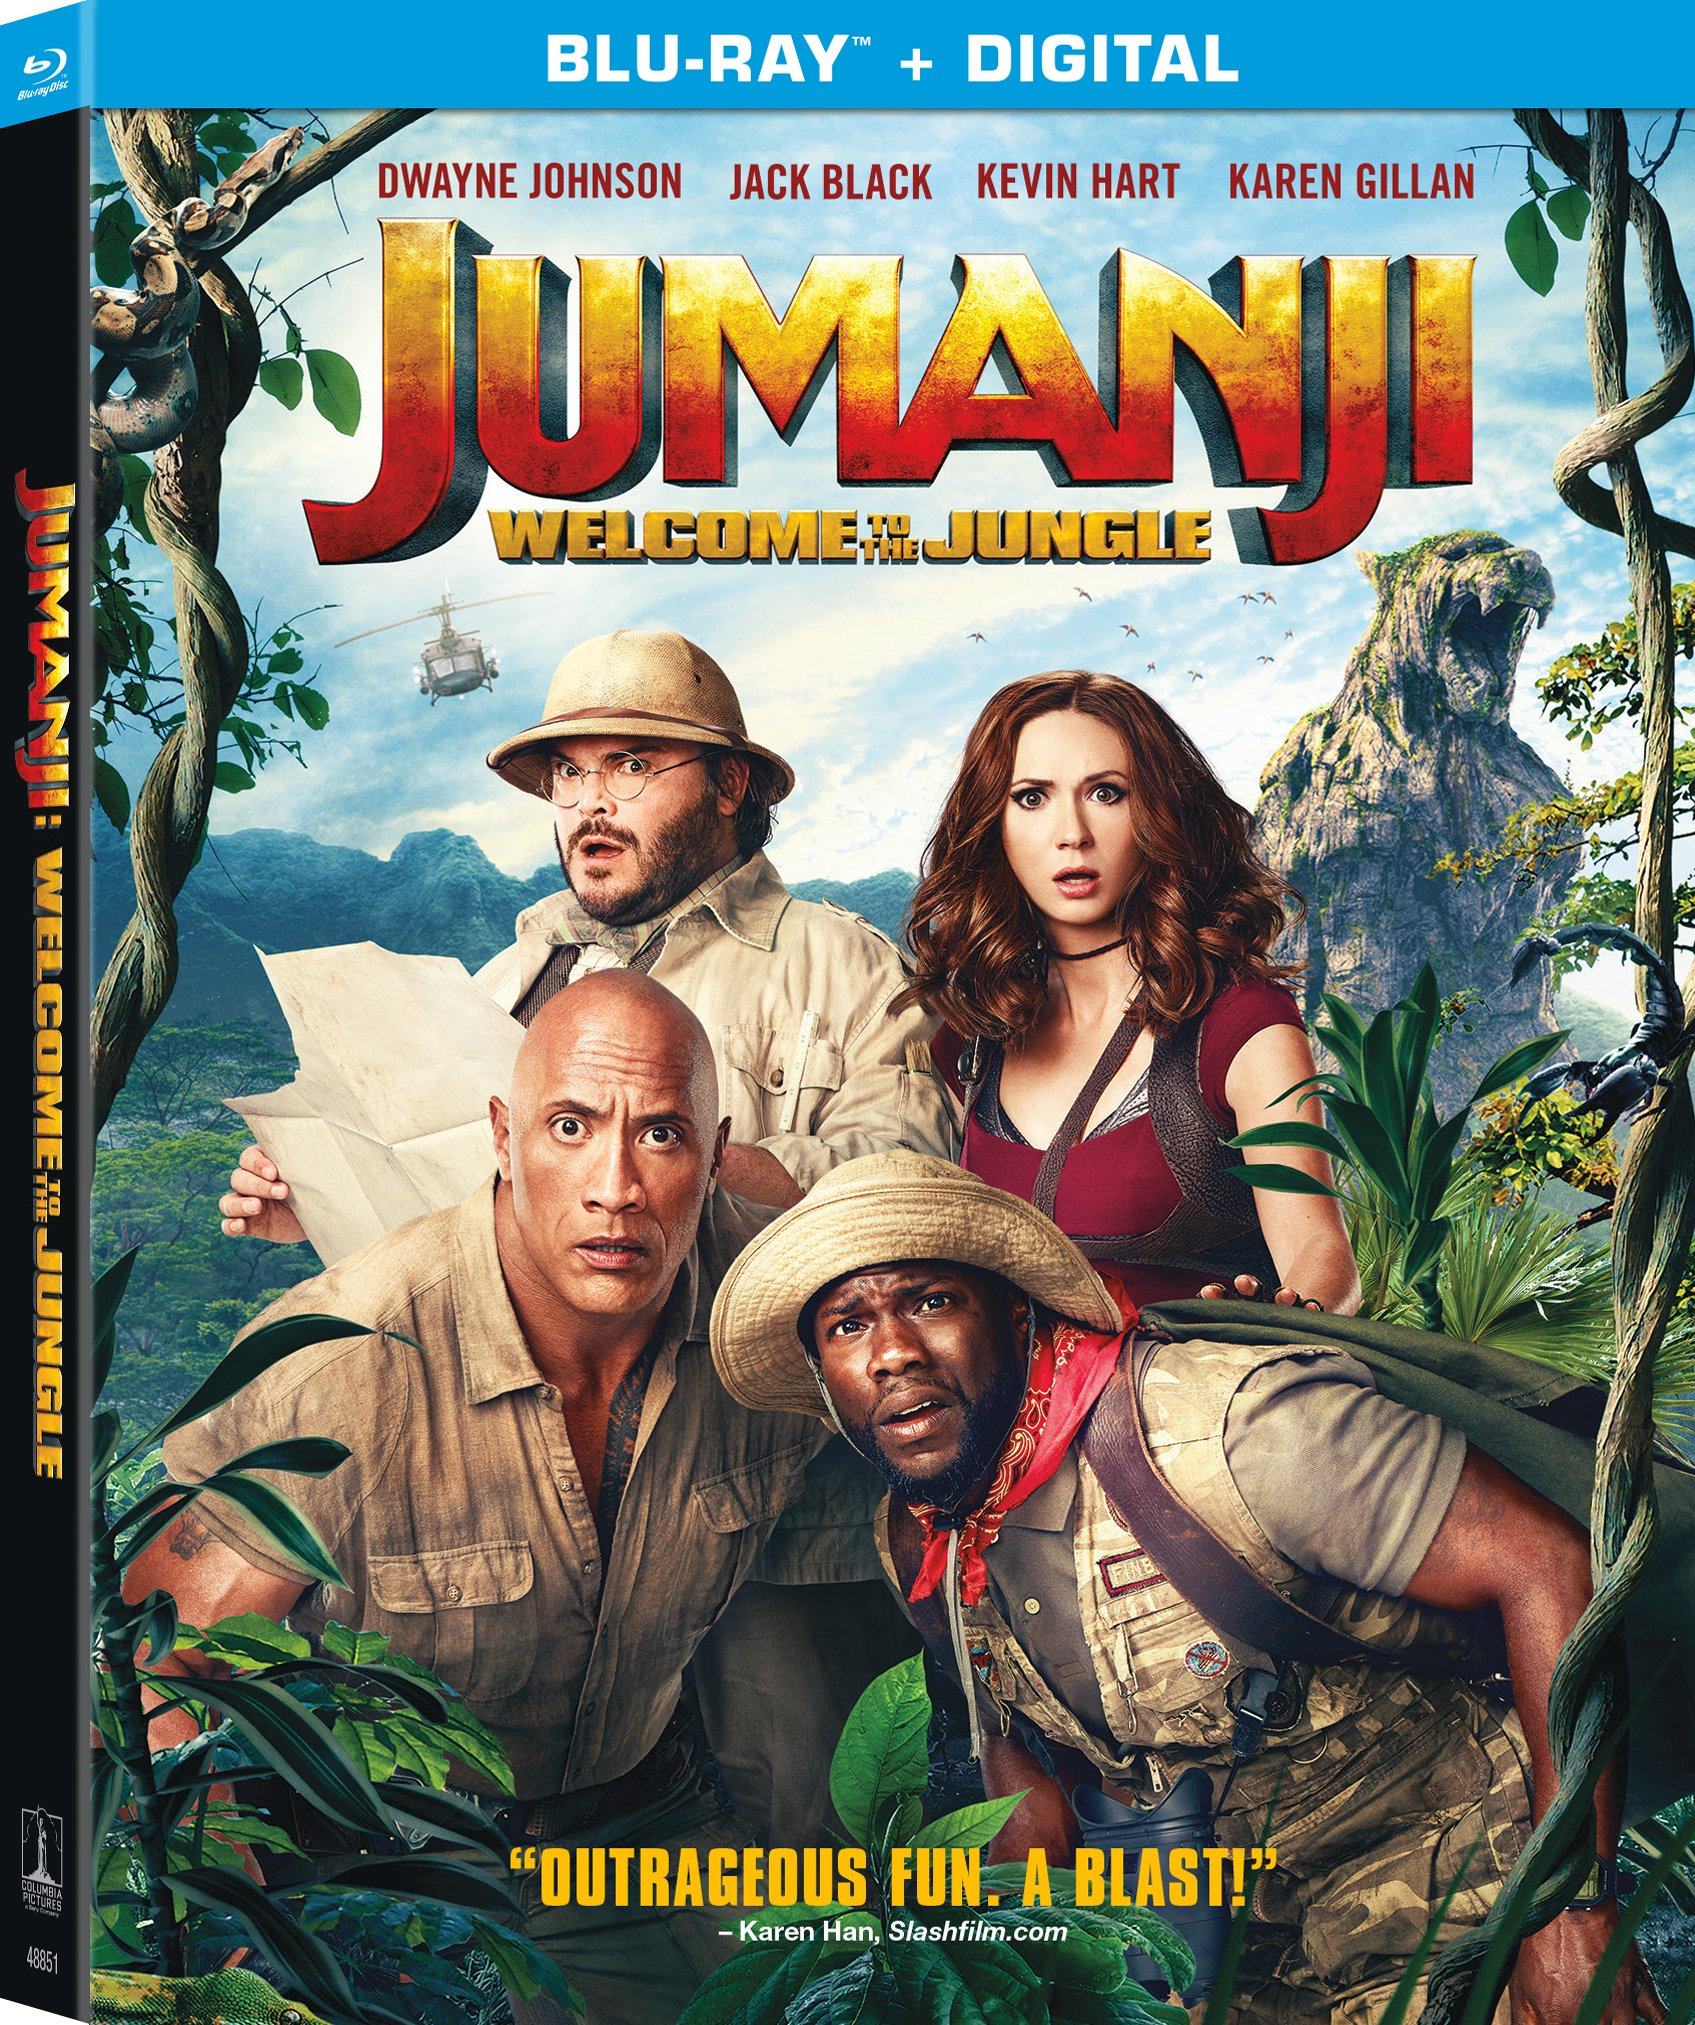 Blu-ray : Jumanji: Welcome To The Jungle (Subtitled, Dubbed, Widescreen, Dolby, AC-3)